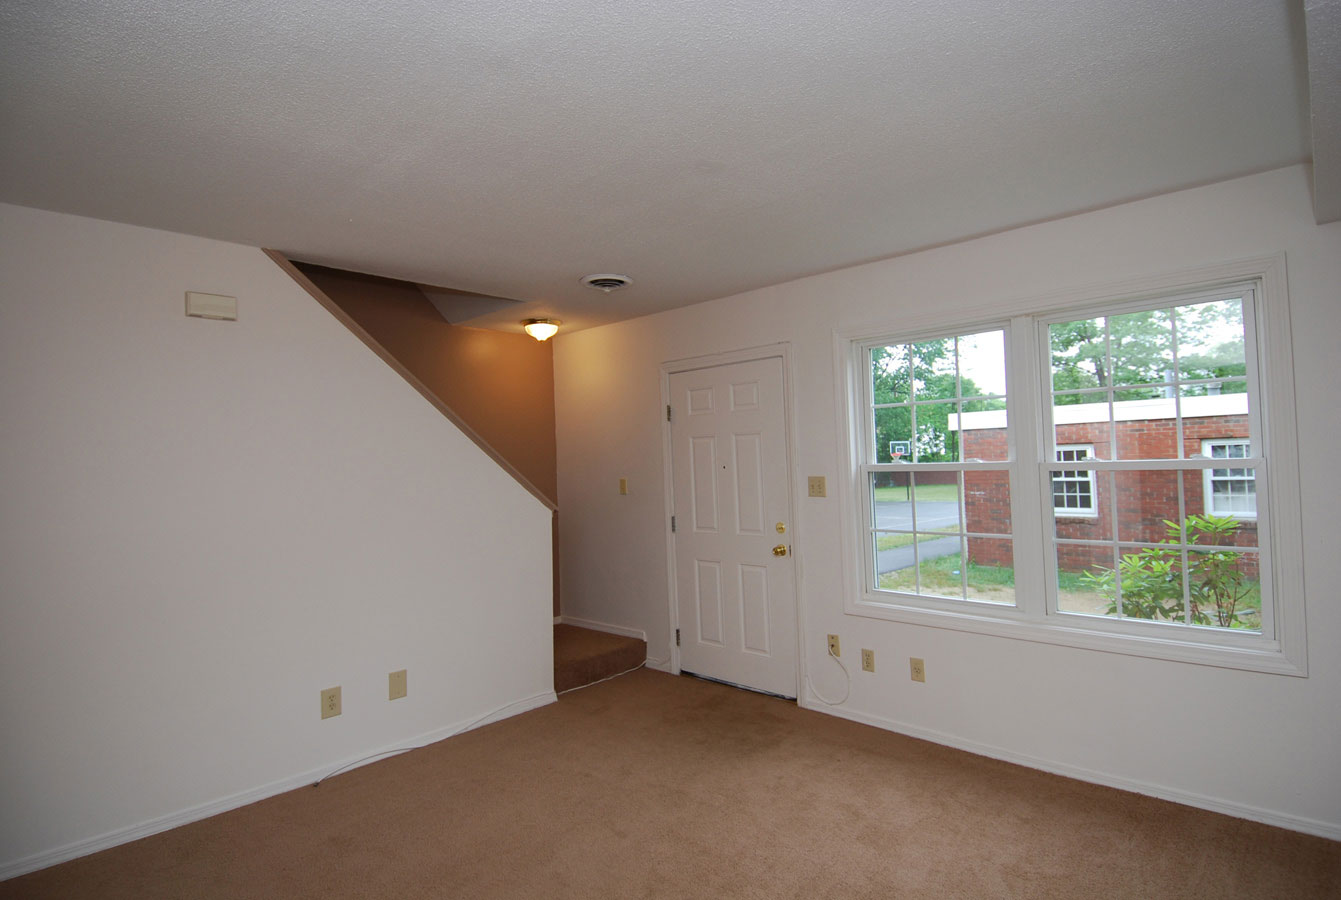 Living Room - 2 Bedroom Townhouse, Wellington Terrace, Manchester NH